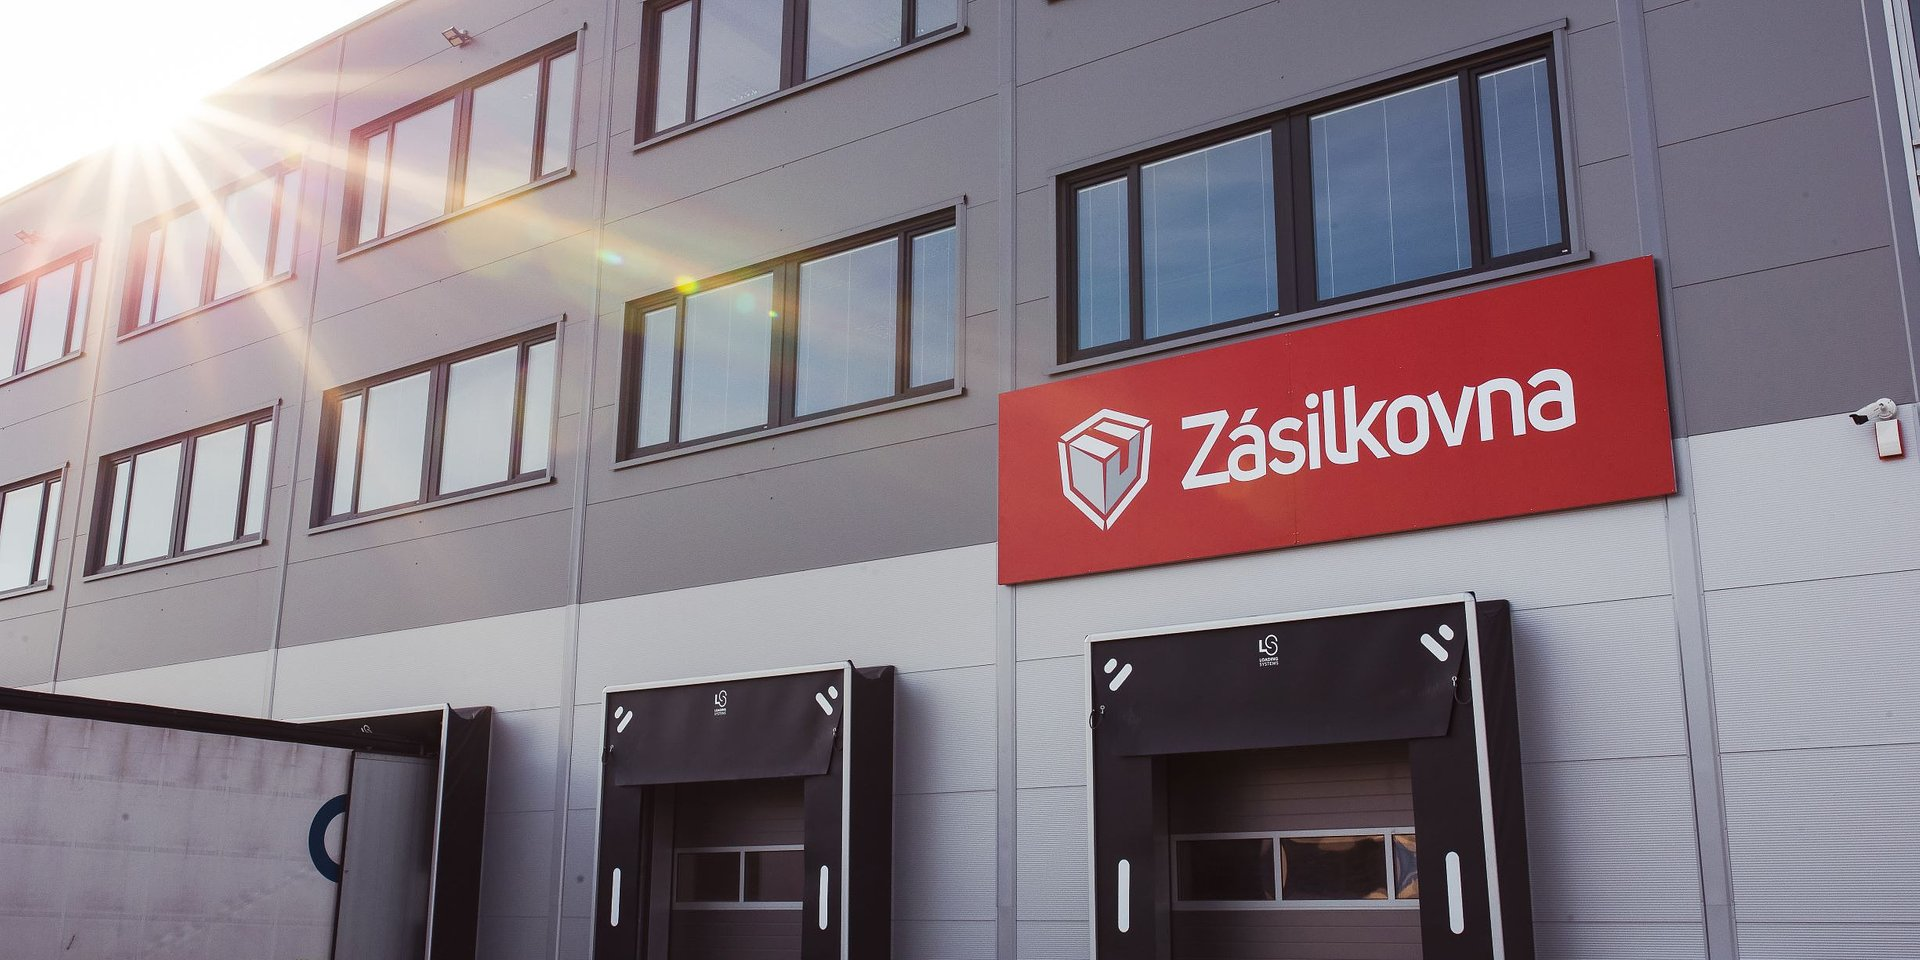 We secured warehouse space for the new Zásilkovna depot in Jihlava